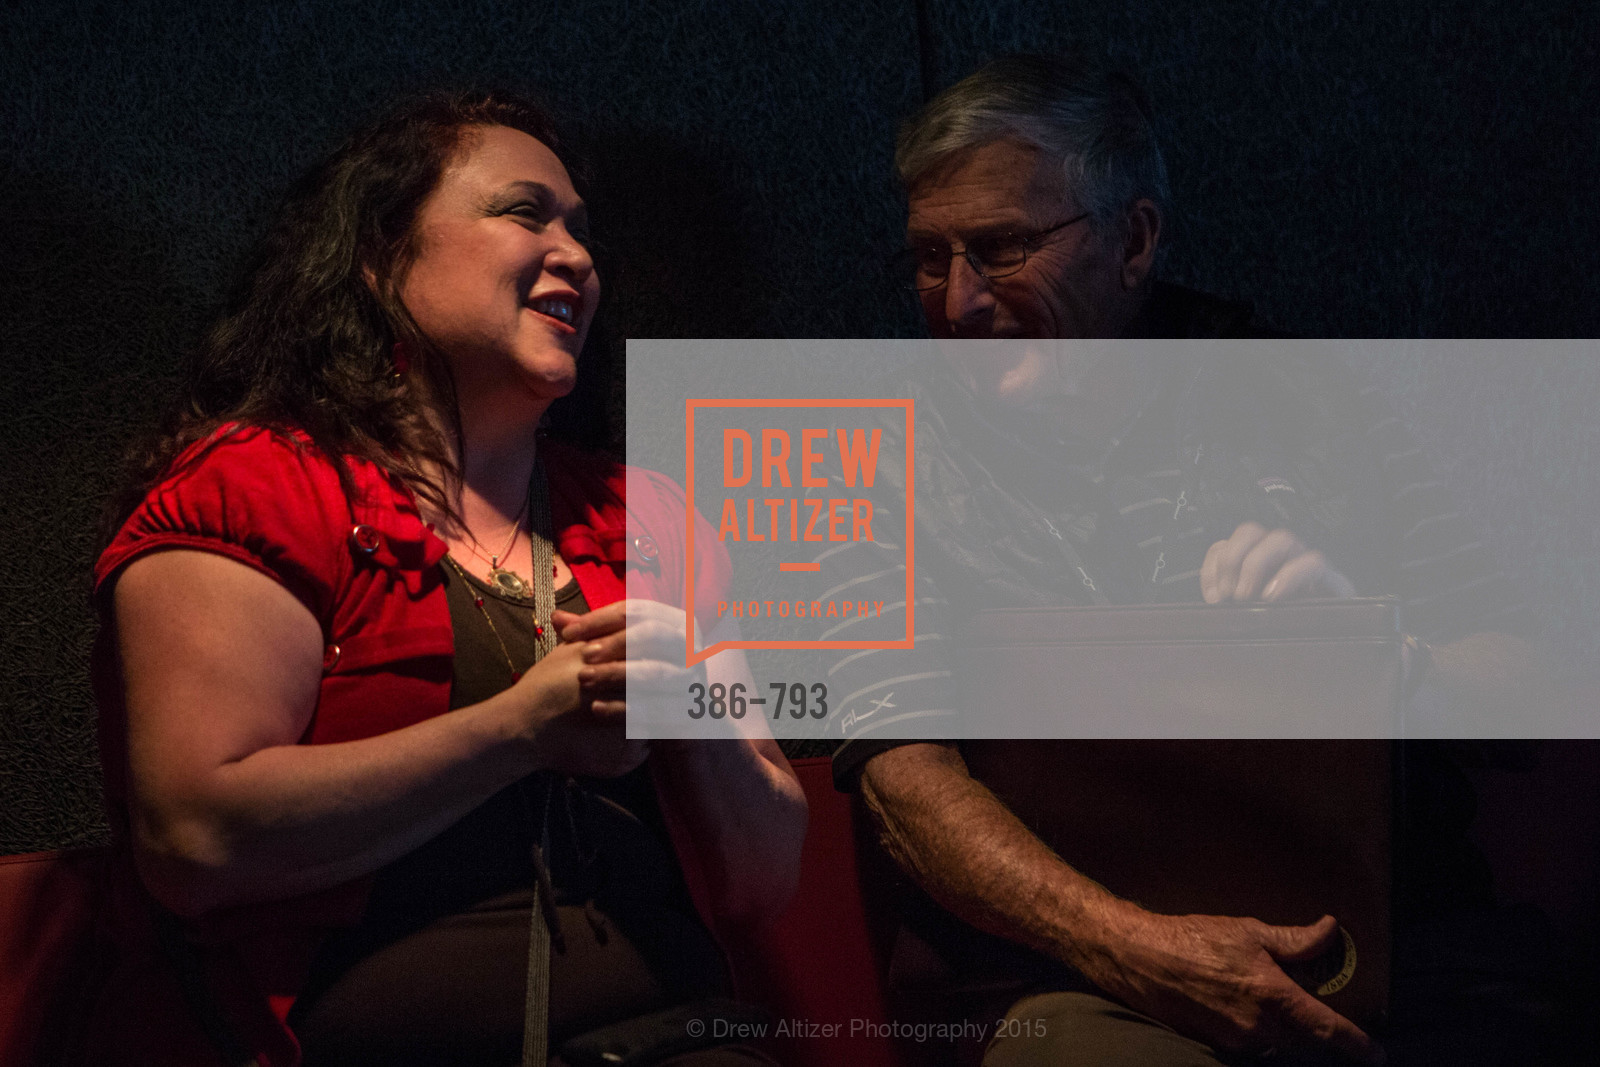 Miriam Mendoza Moody, SF BRAVO CLUB Sneak Peek at the EXPLORATORIUM, US, April 23rd, 2015,Drew Altizer, Drew Altizer Photography, full-service event agency, private events, San Francisco photographer, photographer California